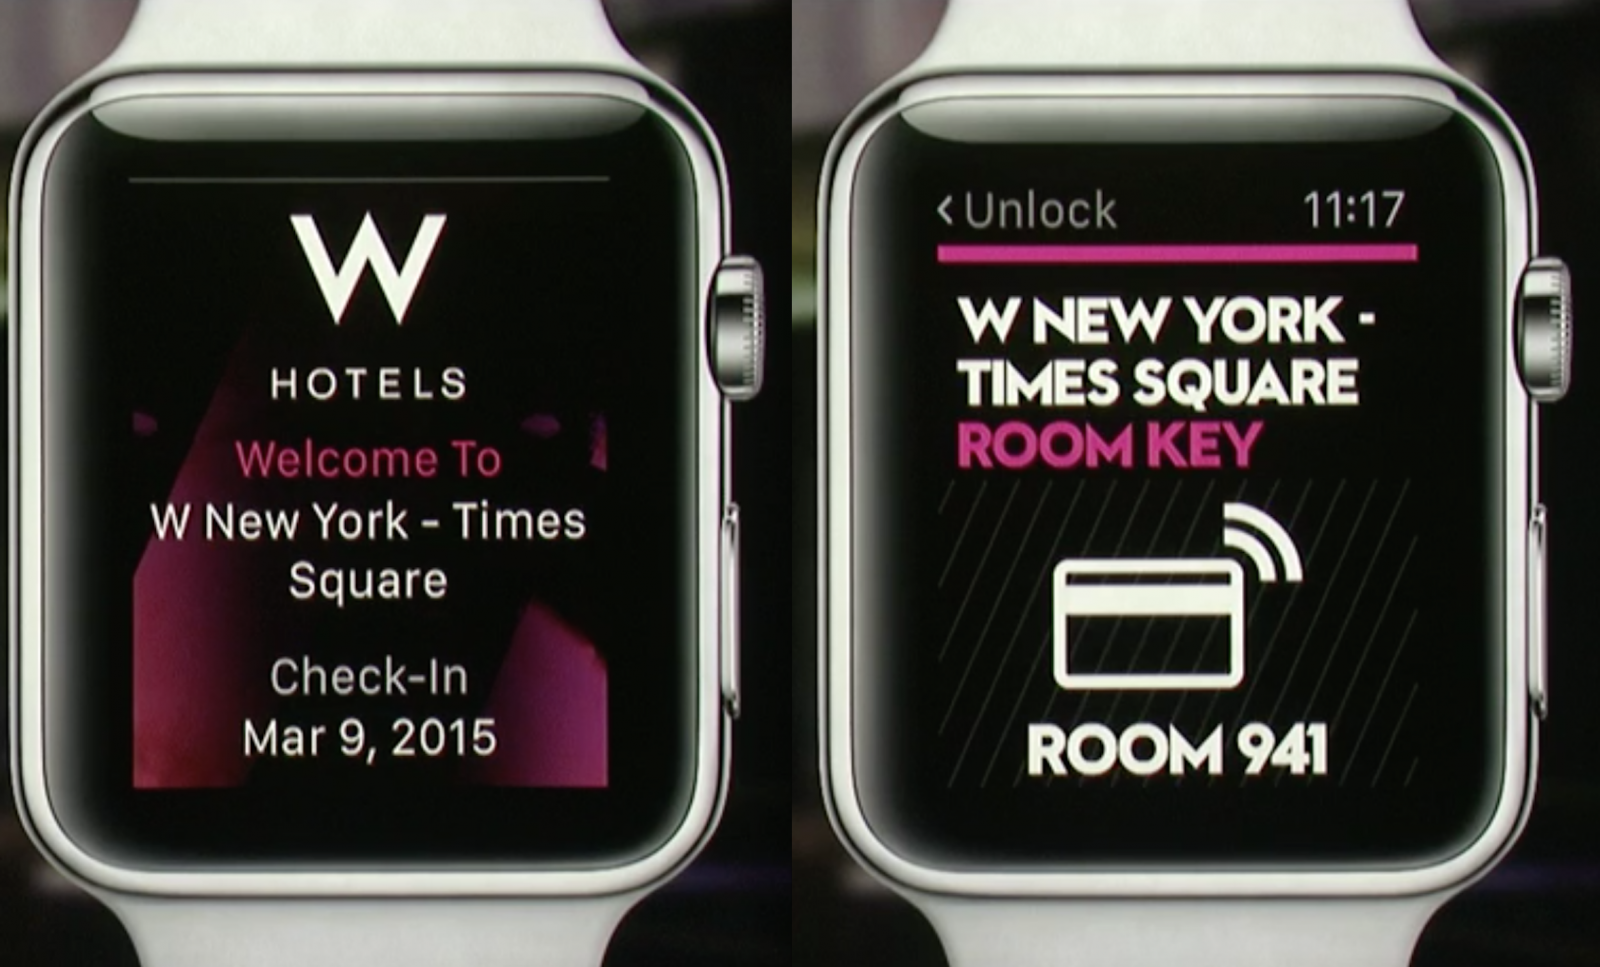 Apple Watch W Hotels app